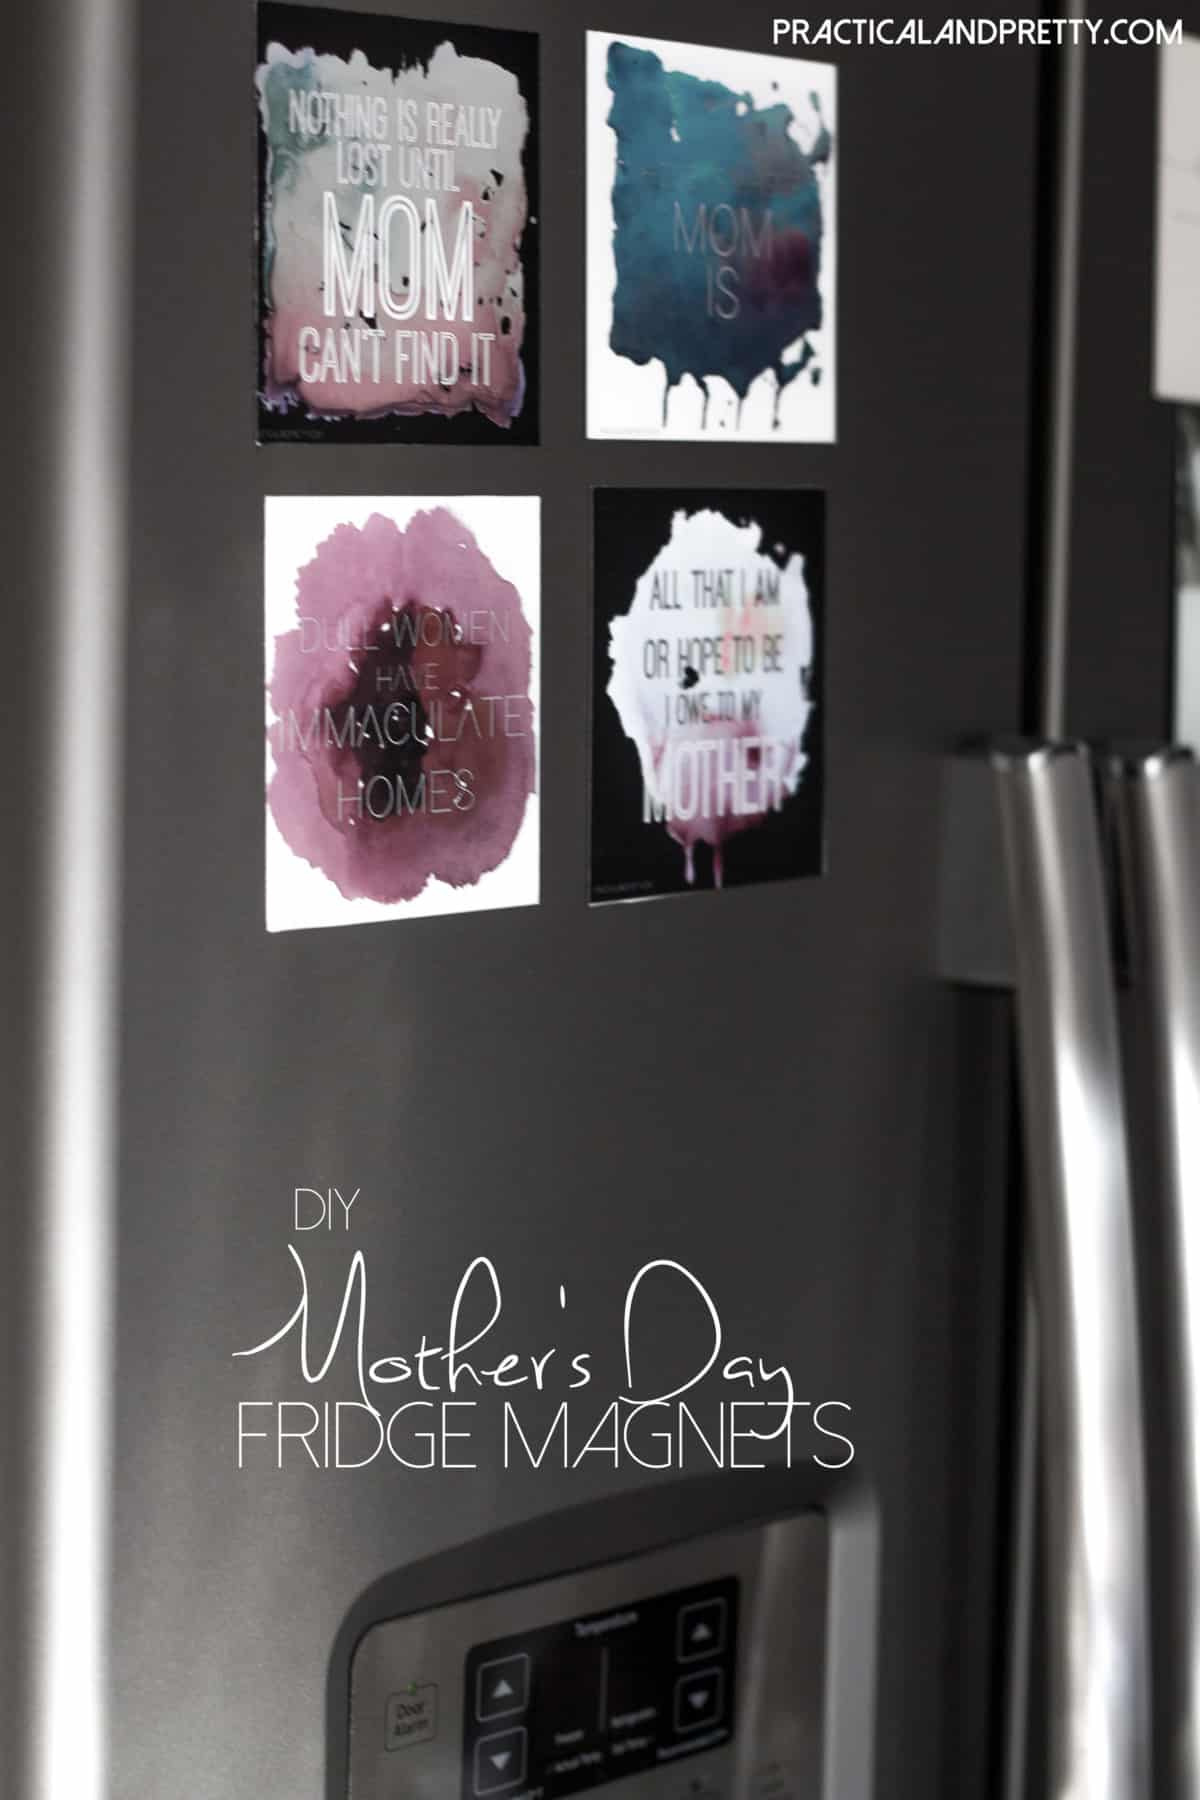 These DIY fridge magnets are the perfect little gift for any mother in your life.